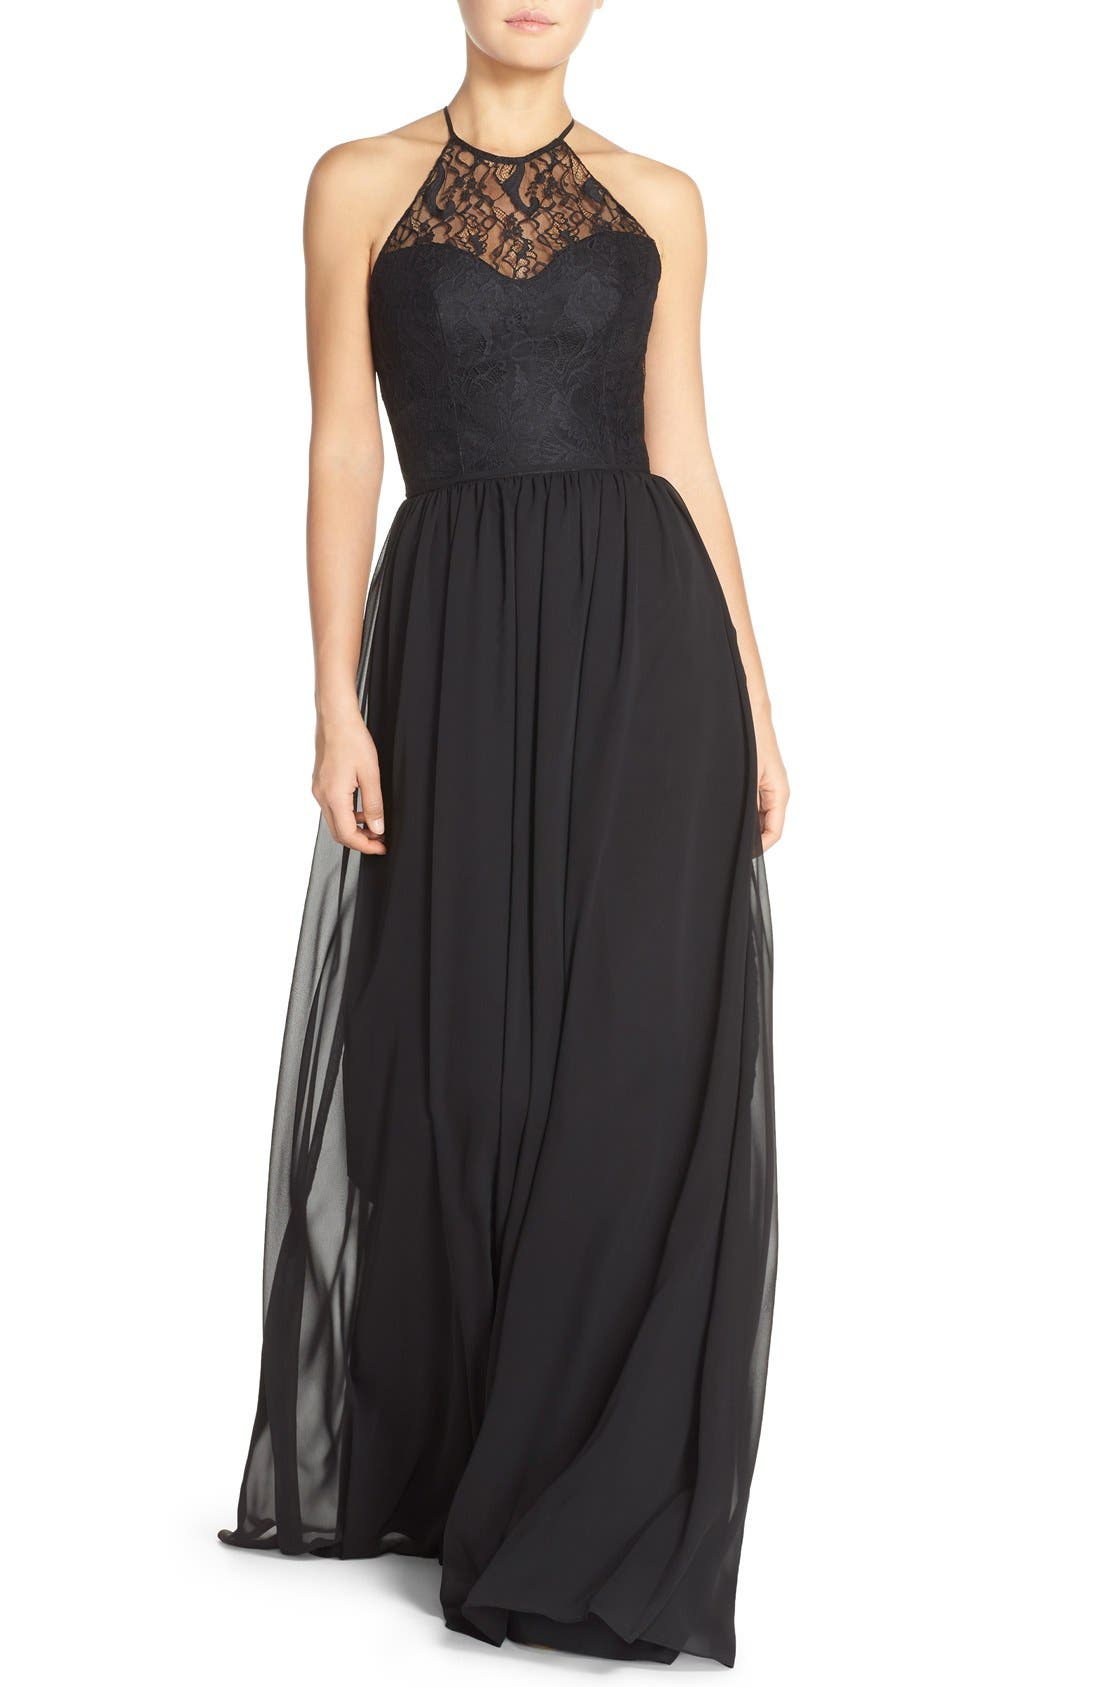 Alternate Image 1 Selected - Hayley Paige Occasions Lace & Chiffon Halter Gown